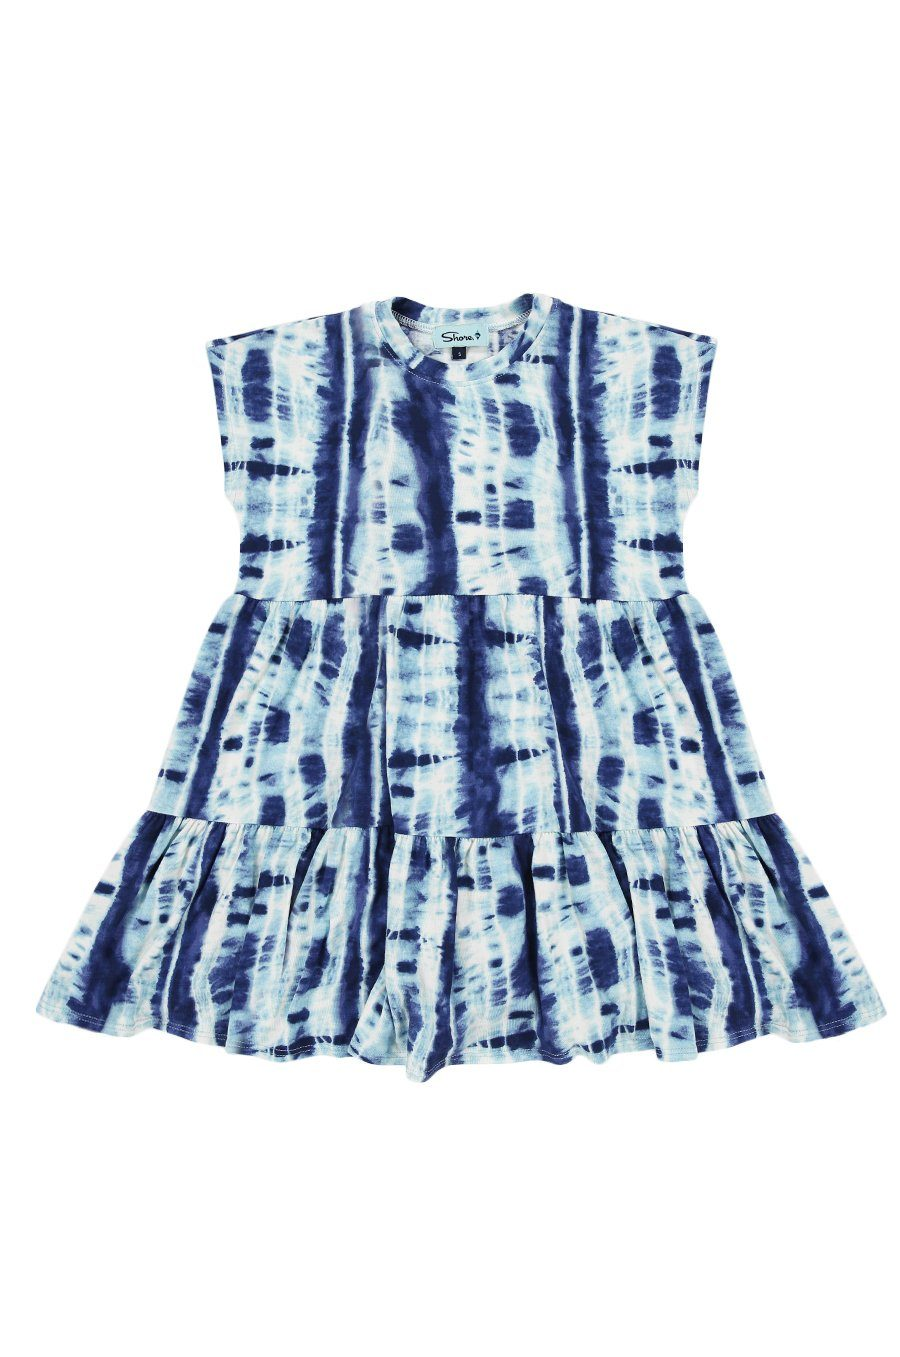 Girls Babydoll Dress - Blue Tie Dye